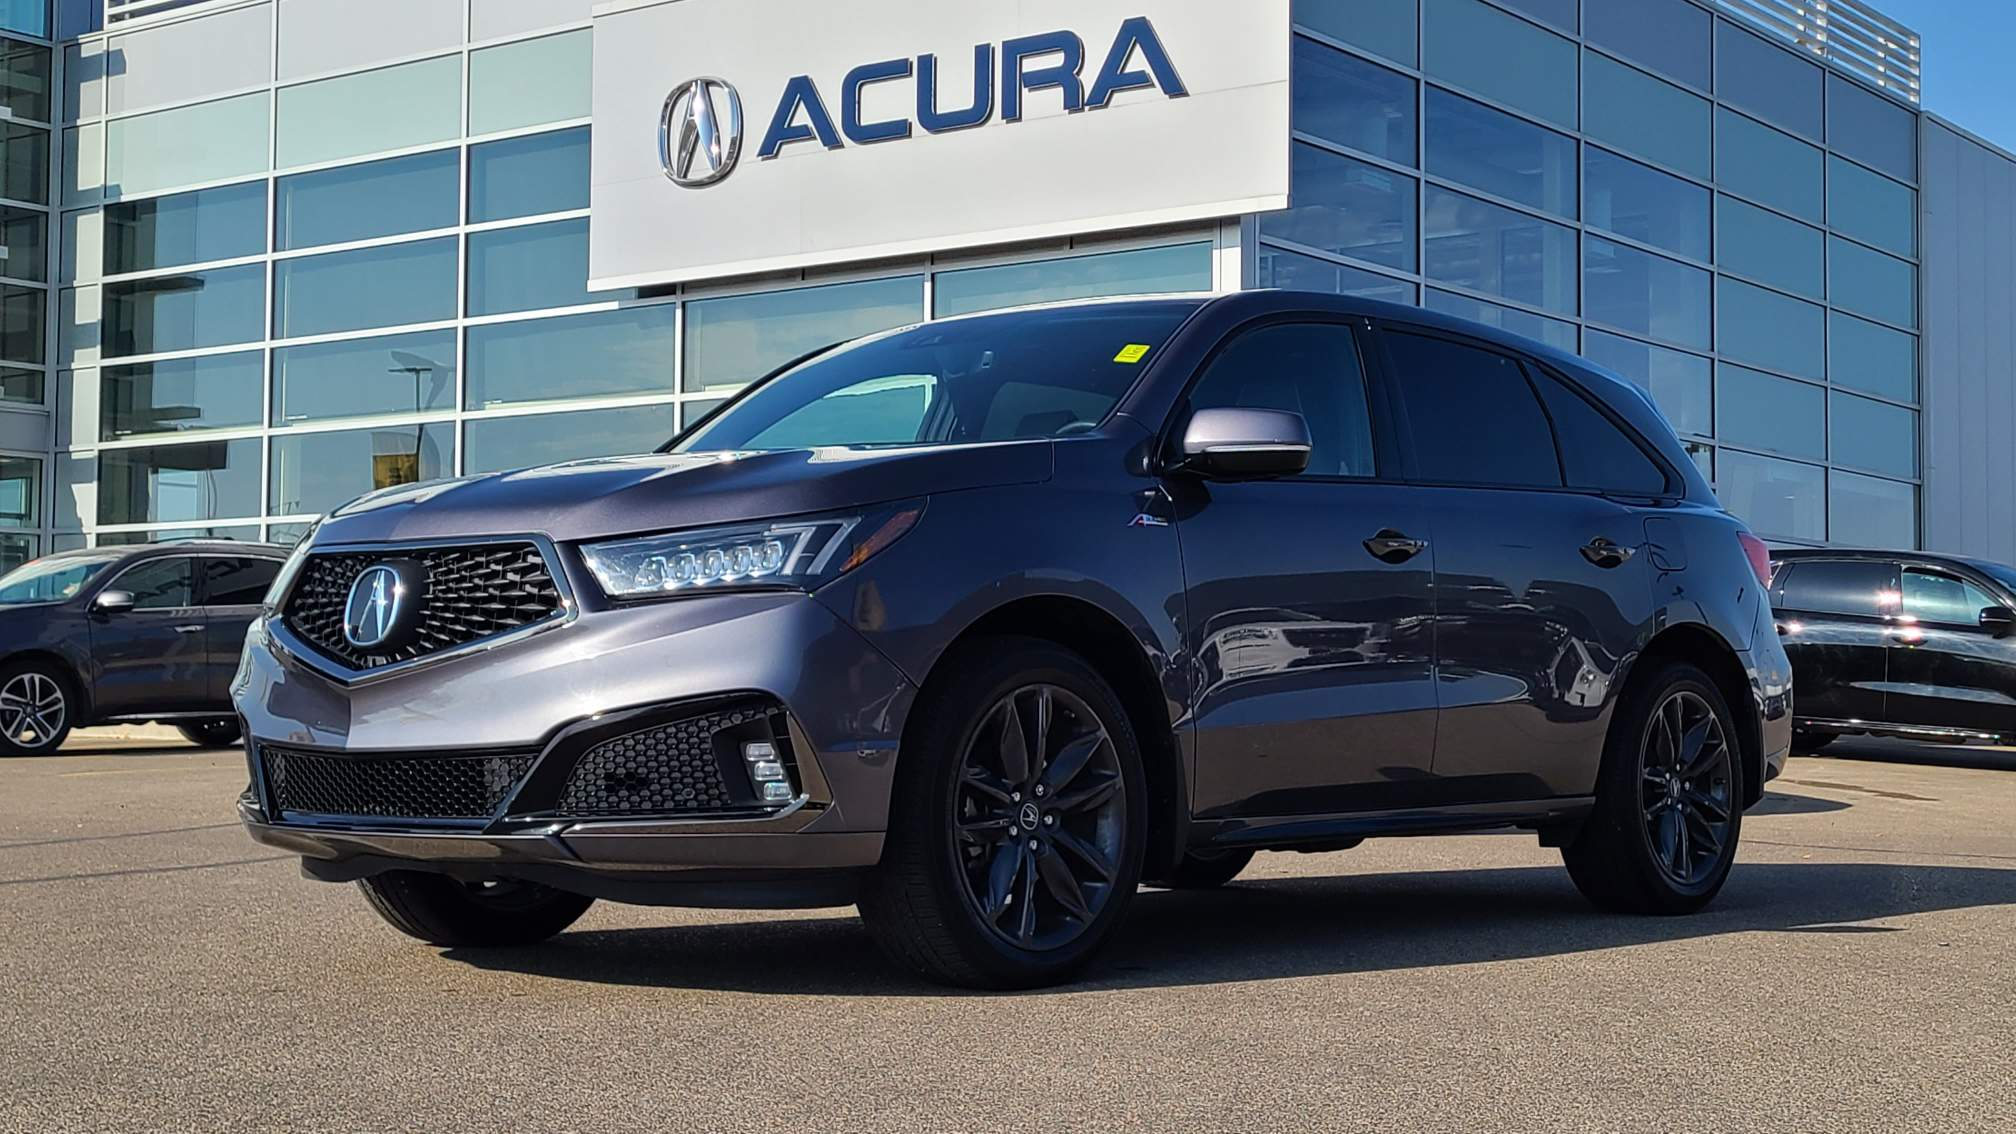 used 2019 Acura MDX car, priced at $51,810